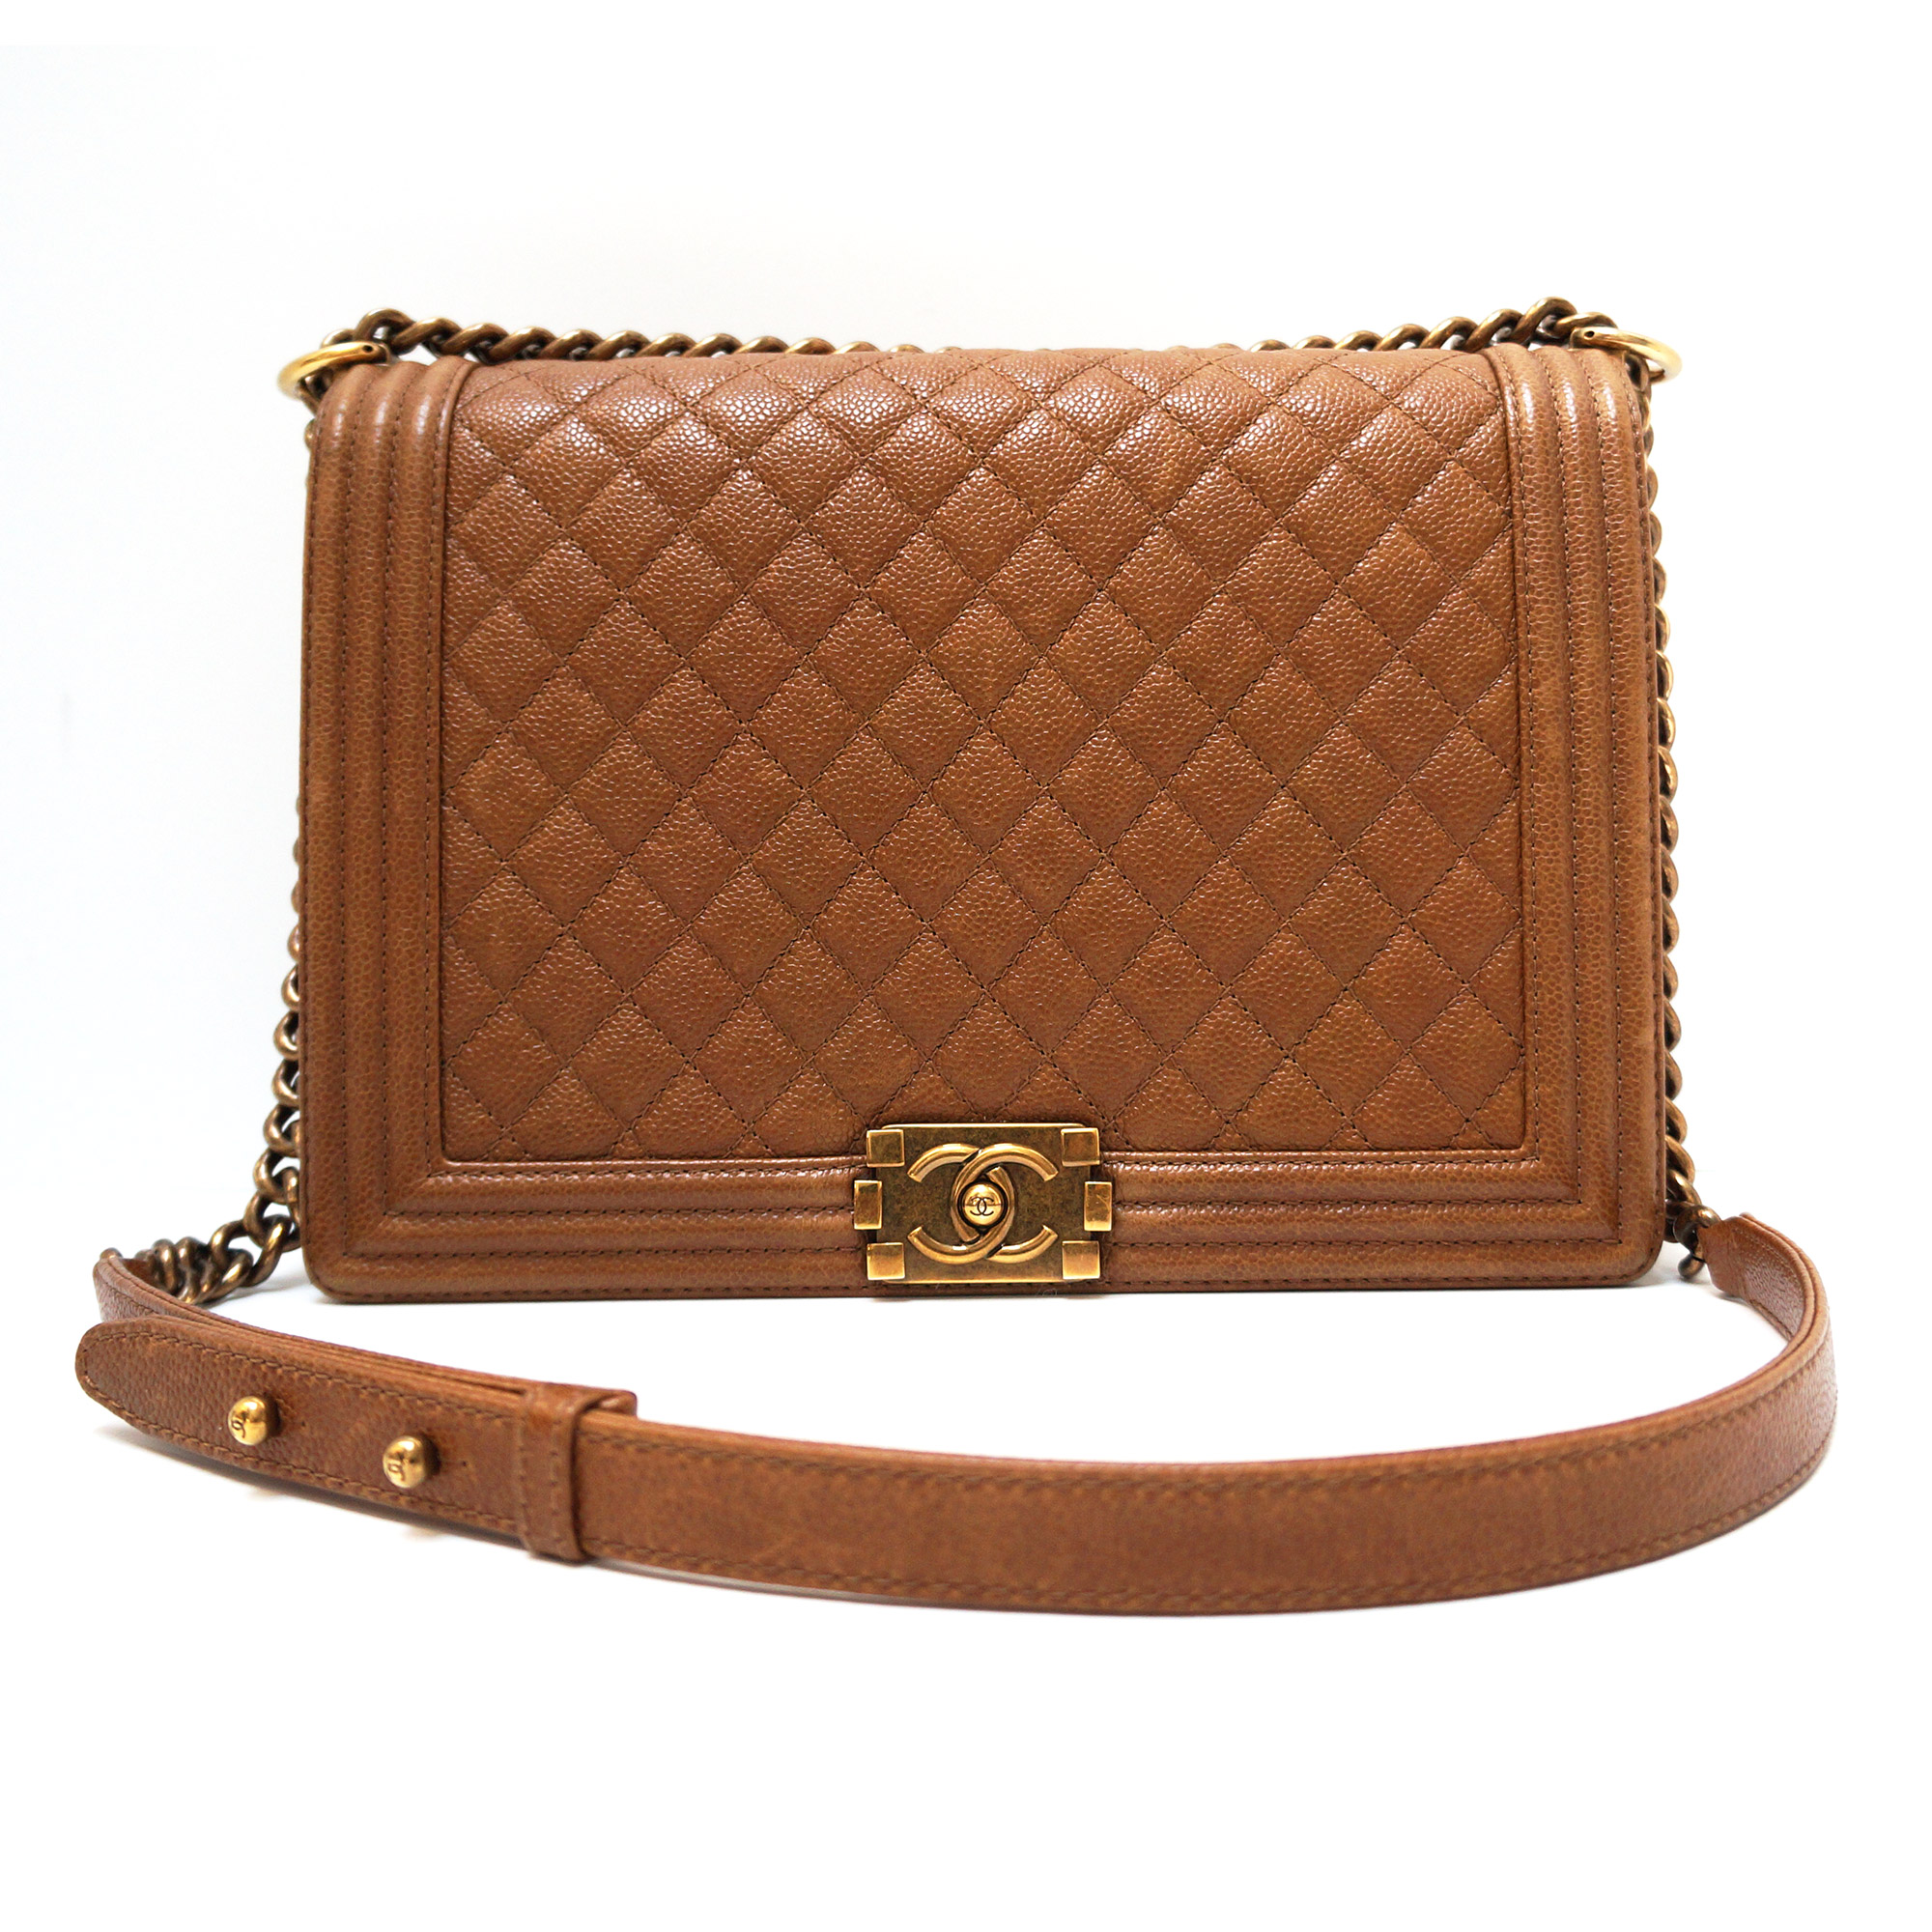 74e1d645aea2 Chanel Jumbo Boy Flap Bag Caramel Caviar Leather Gold Hardware ...